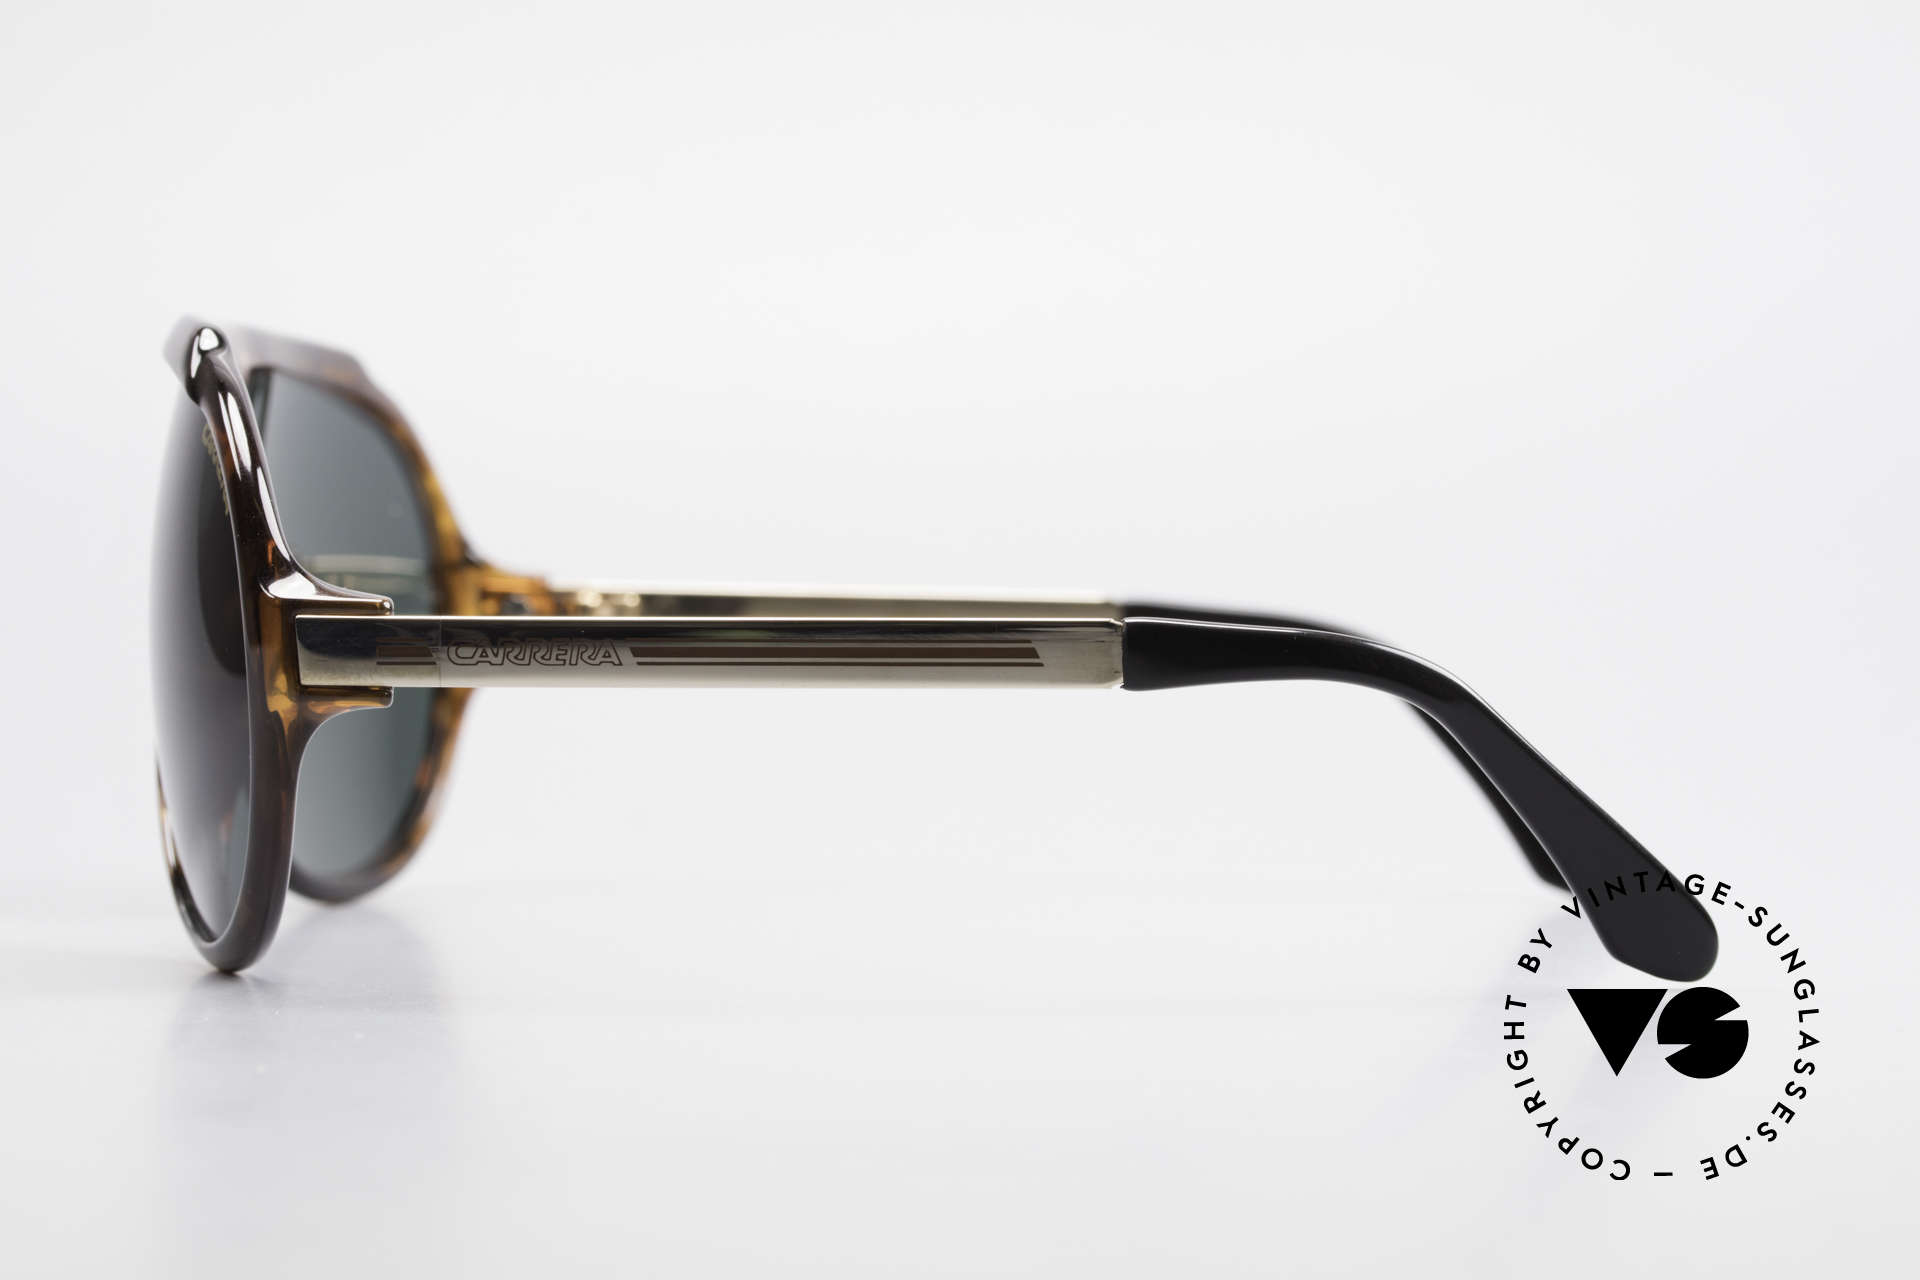 Carrera 5512 80's Sunglasses Don Johnson, cult object and sought-after collector's item, worldwide, Made for Men